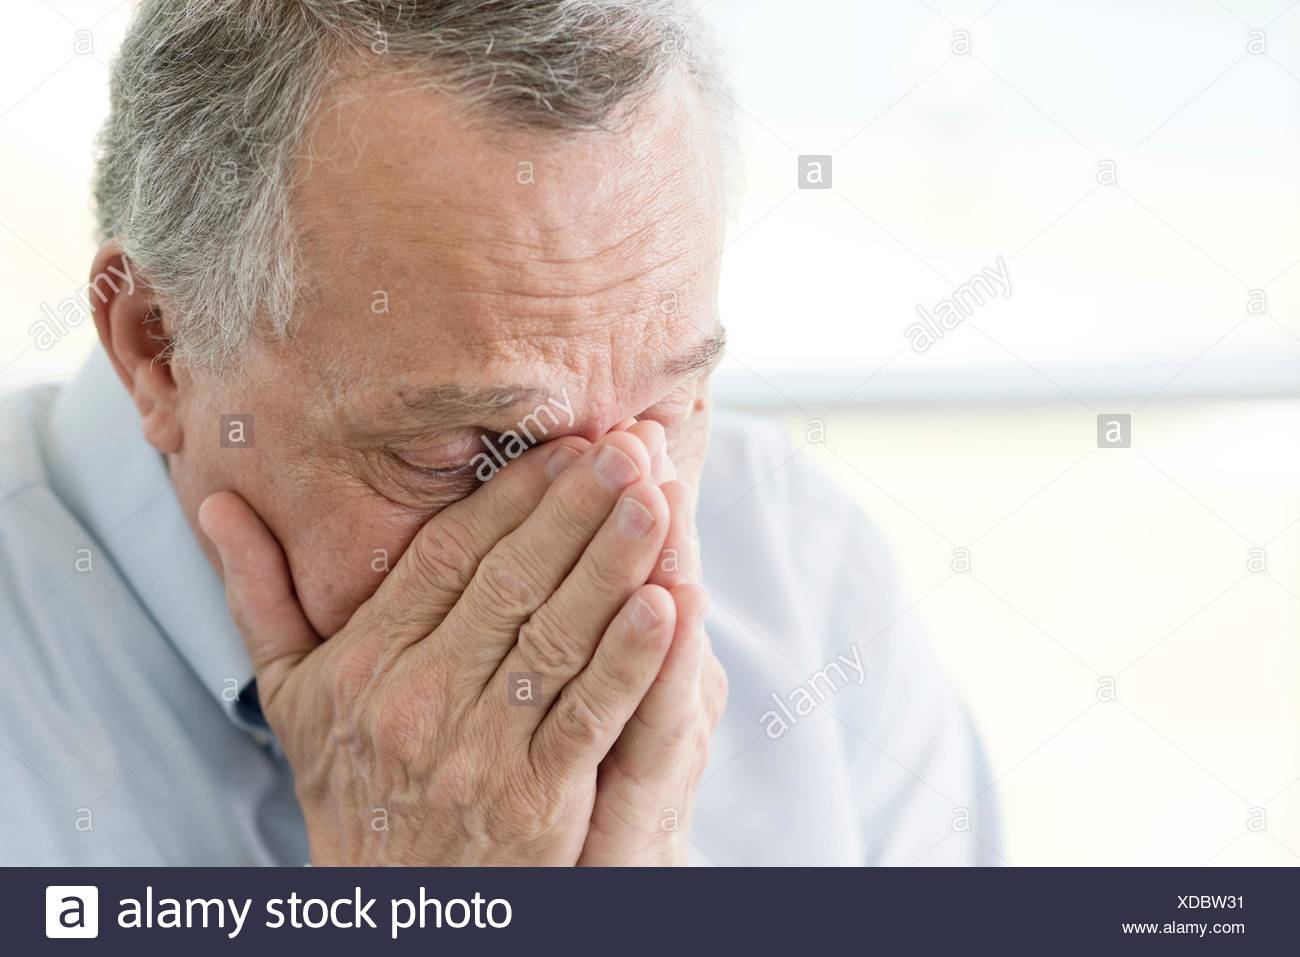 Senior man with hands covering face, close up. - Stock Image